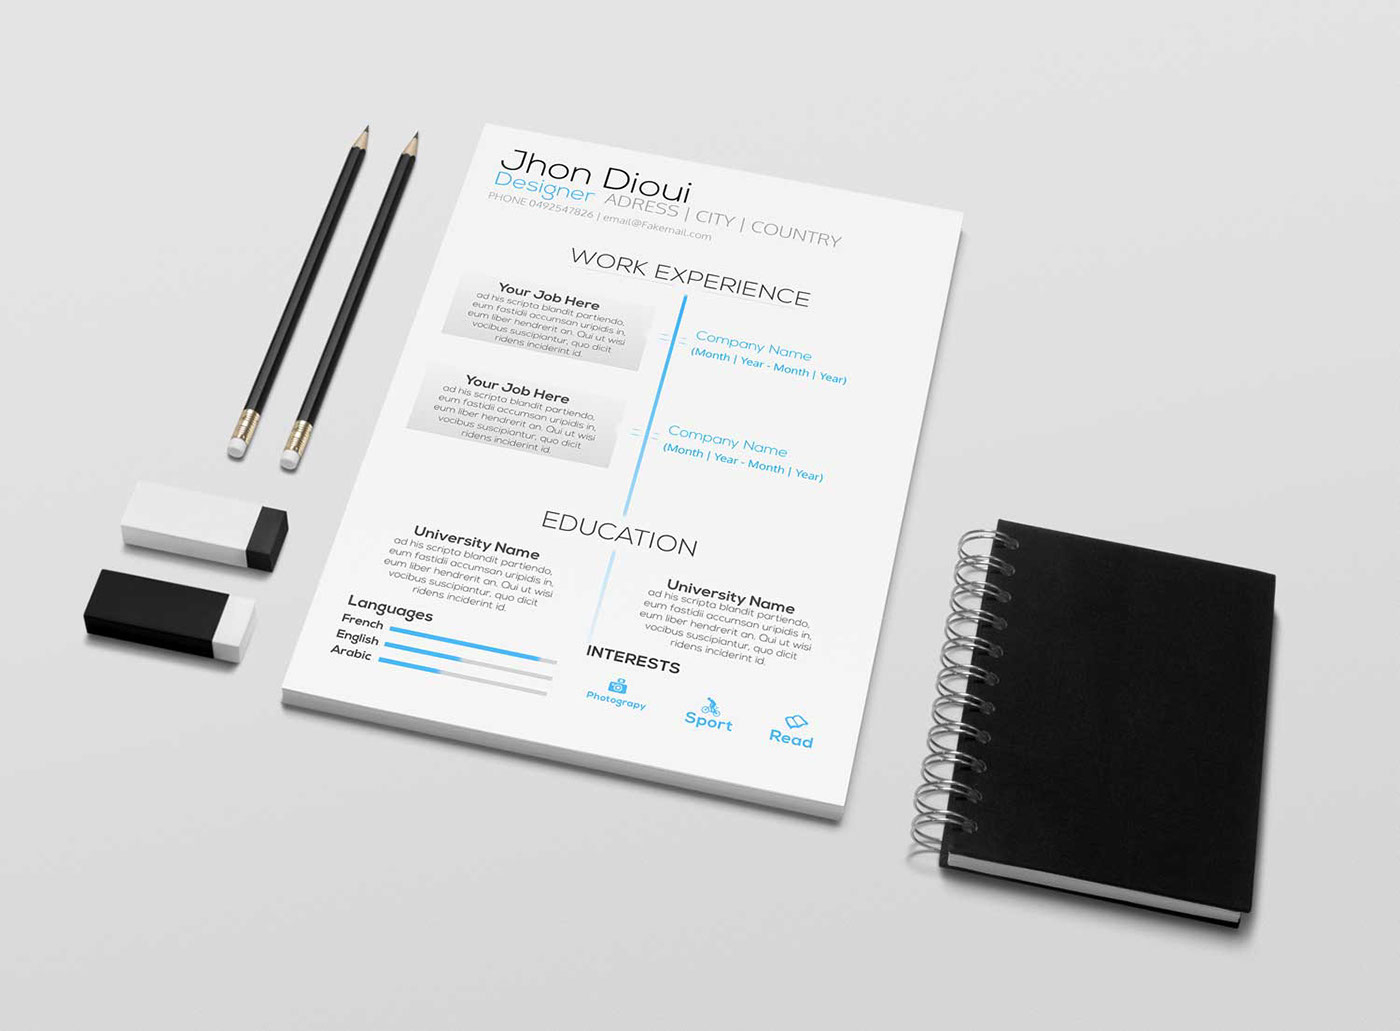 Free Psd Resume Templates - Free Resume Template Psd On Behance